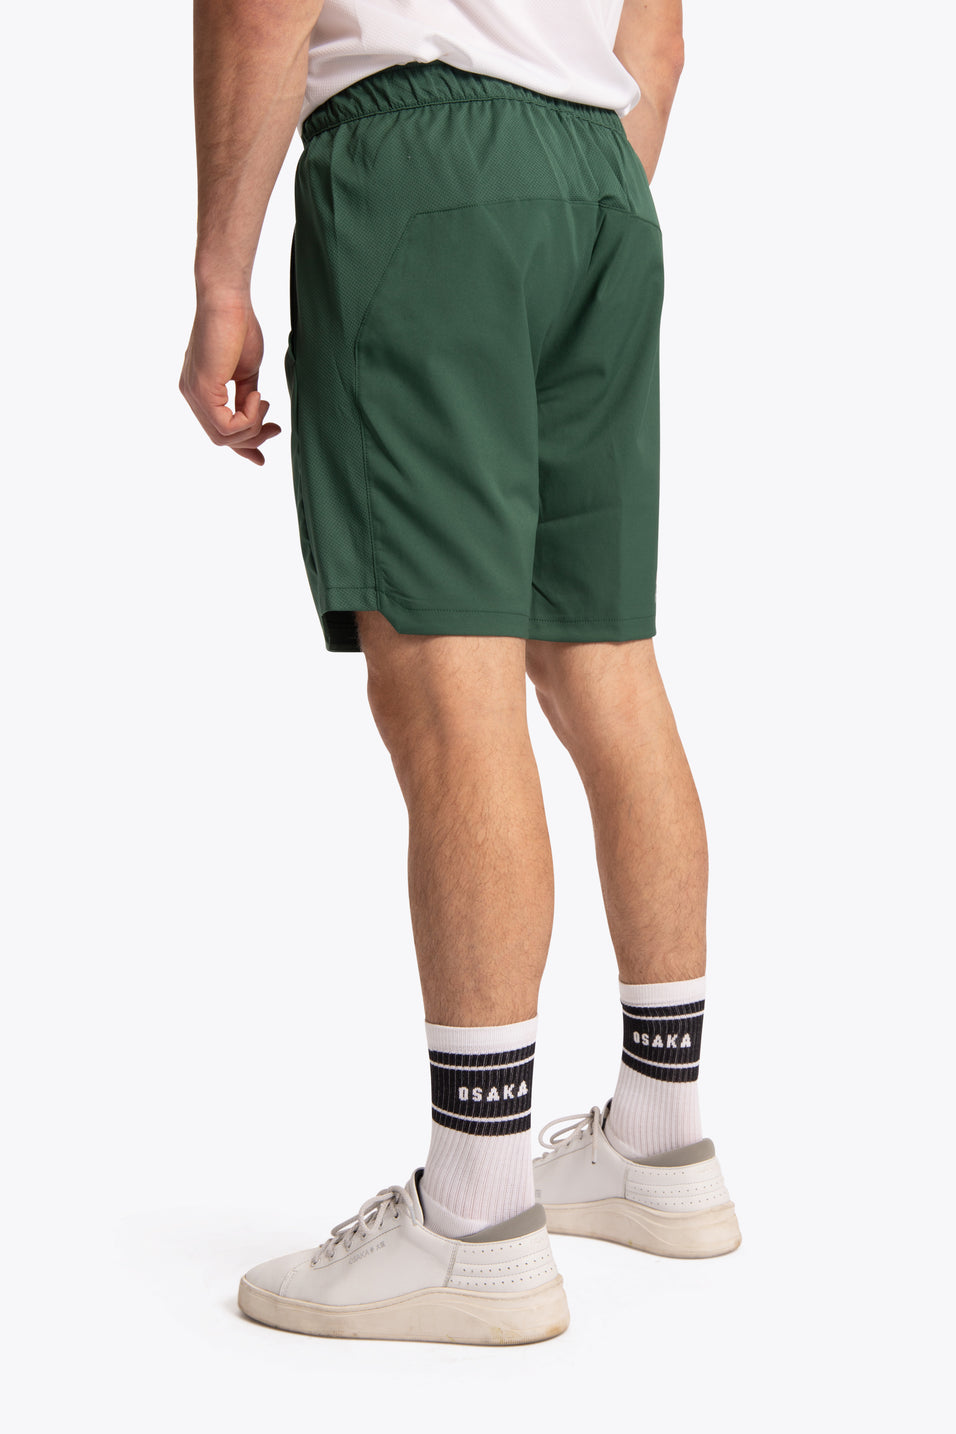 Osakaworld training short dark green men